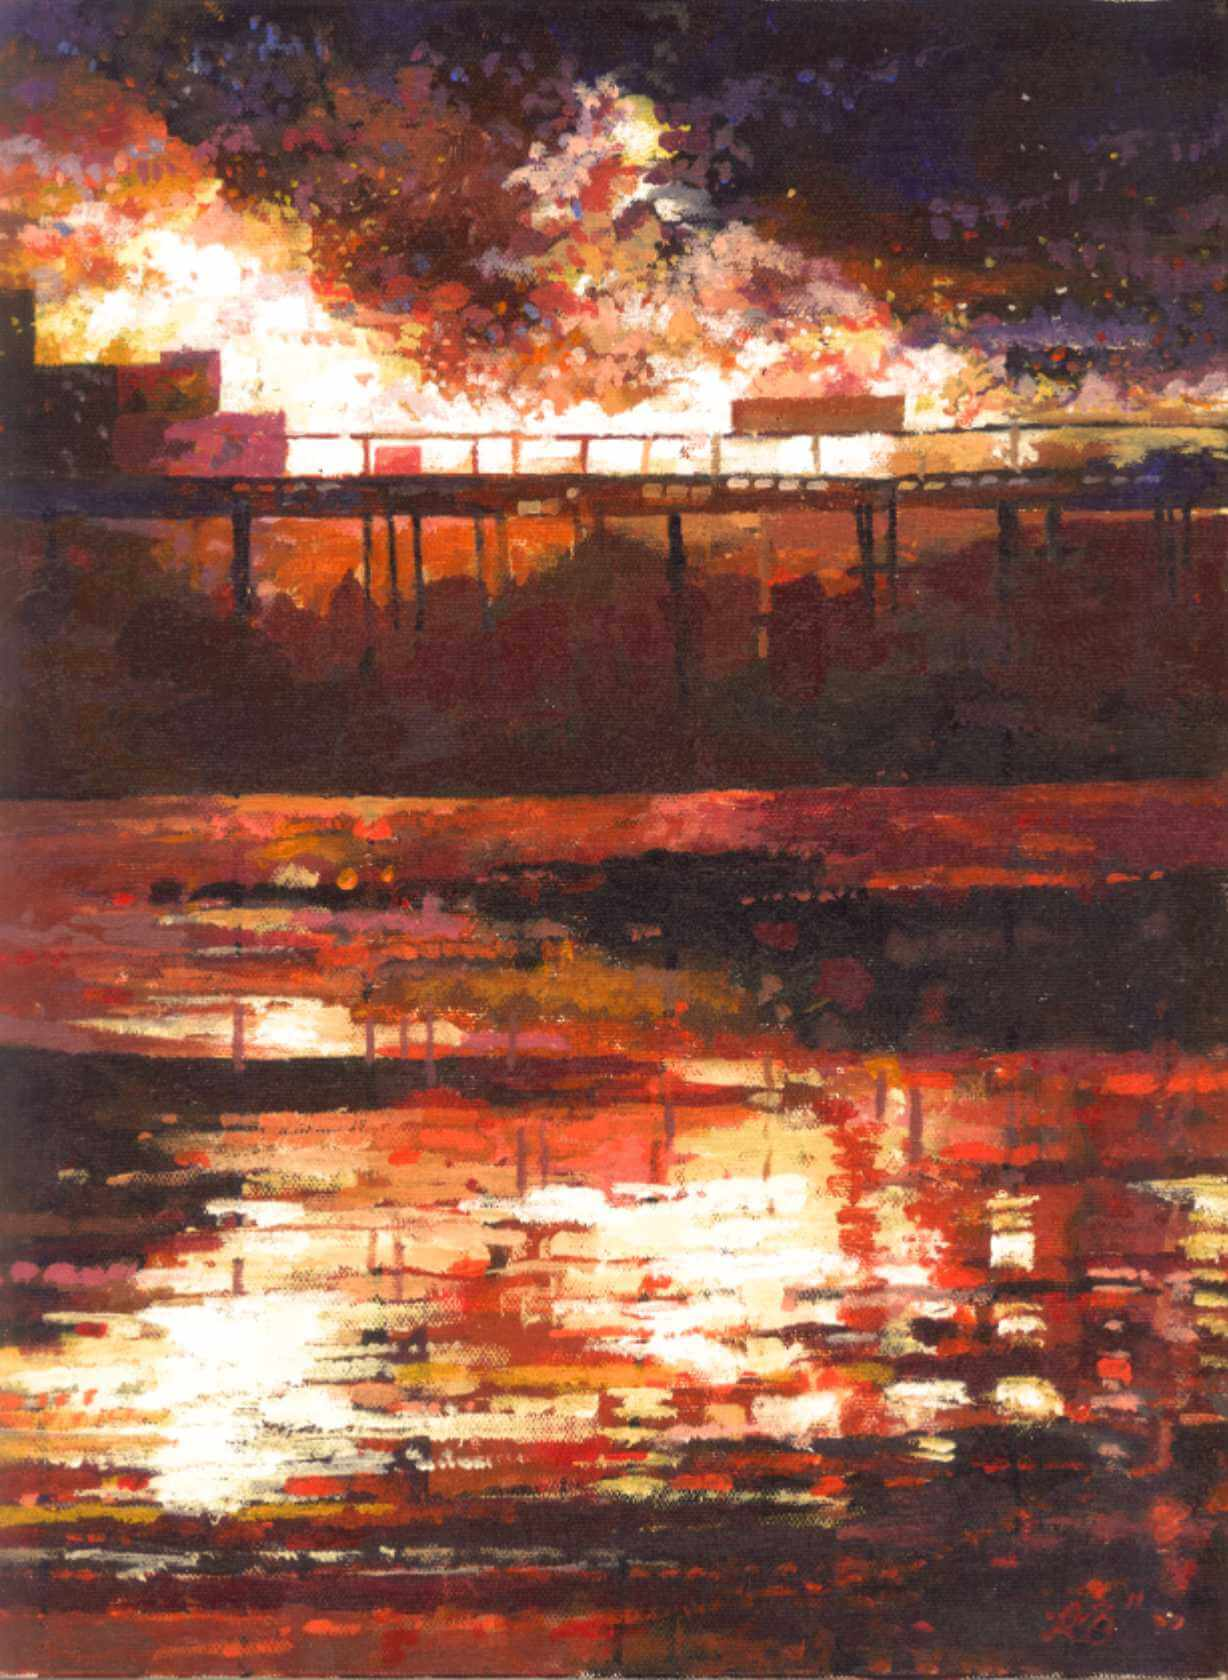 2011 The Great Fire of Hastings Pier (study)